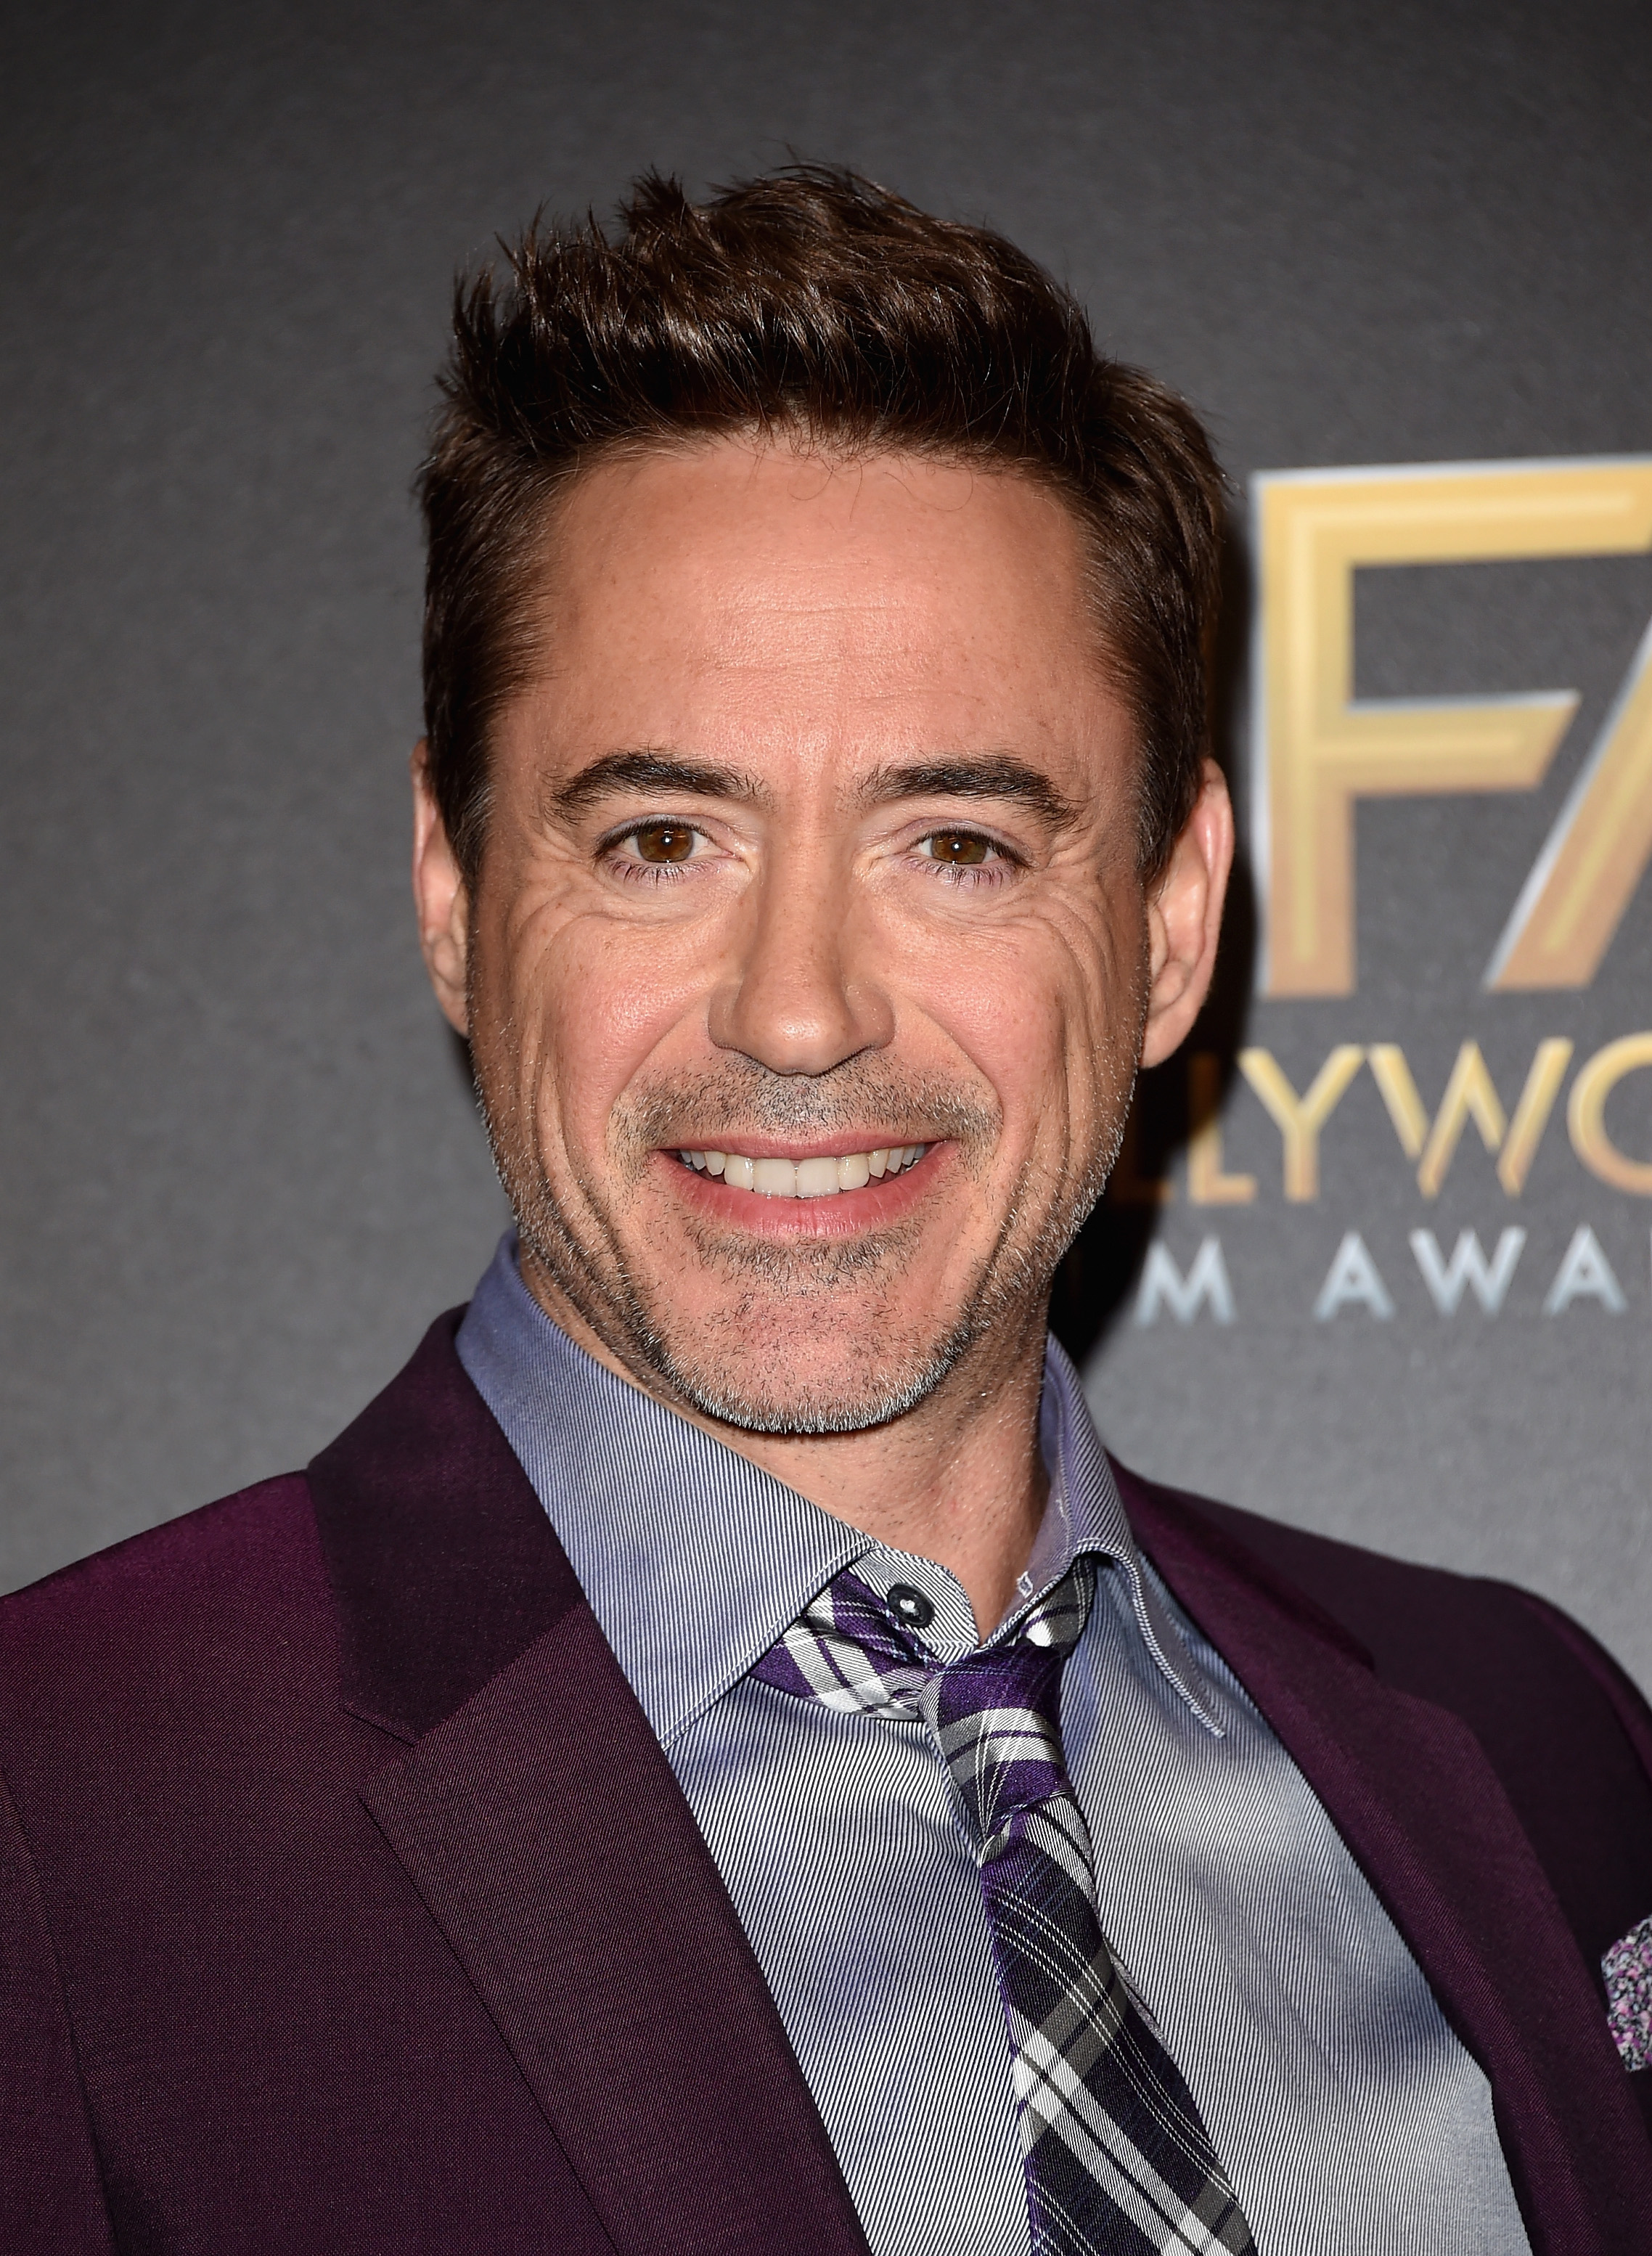 Robert Downey Jr Shares New Pic Of His Rarely